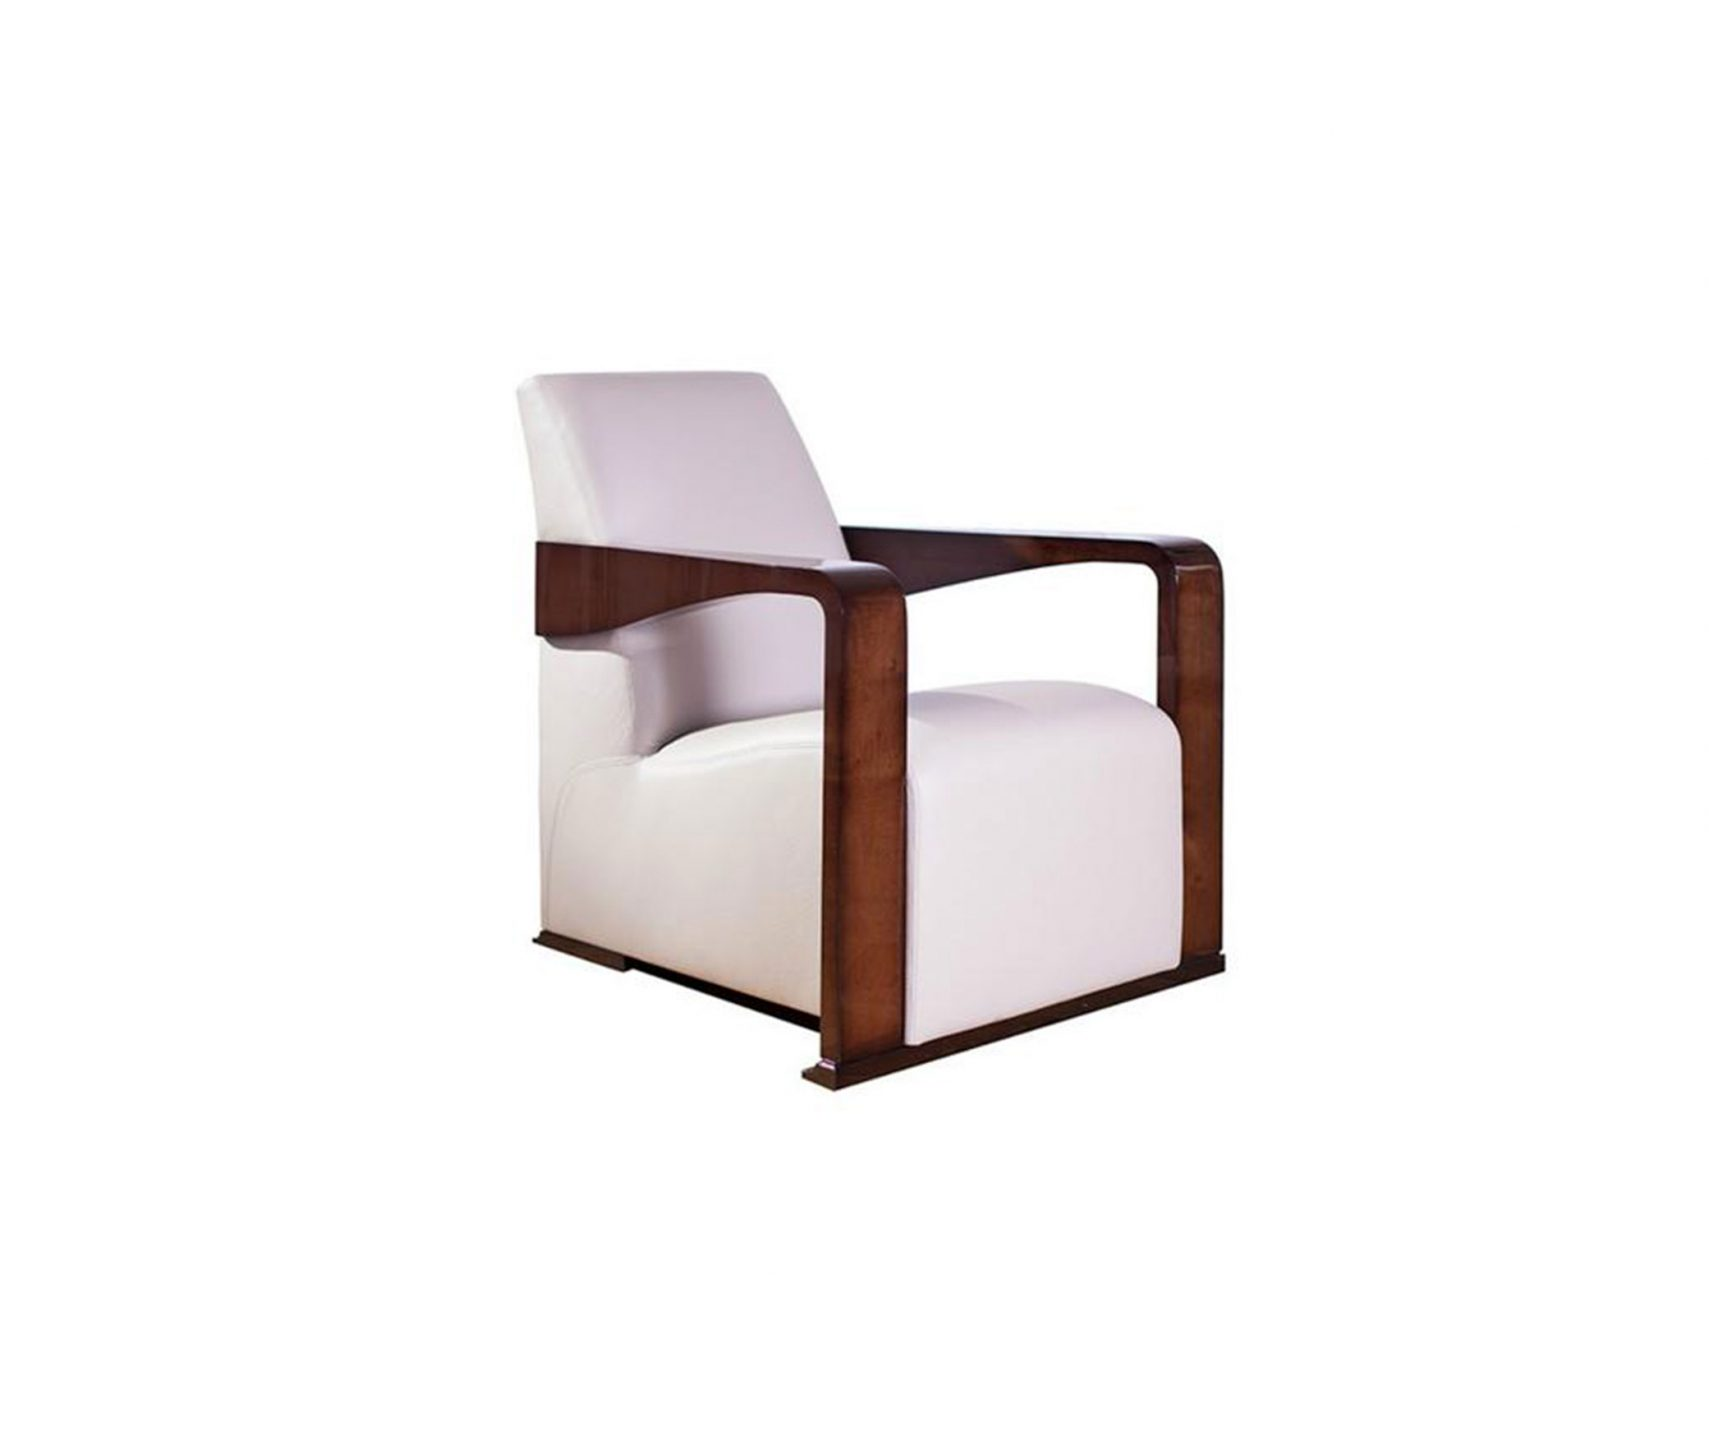 Profiles_Ying-Lounge-Chair-1_int_products